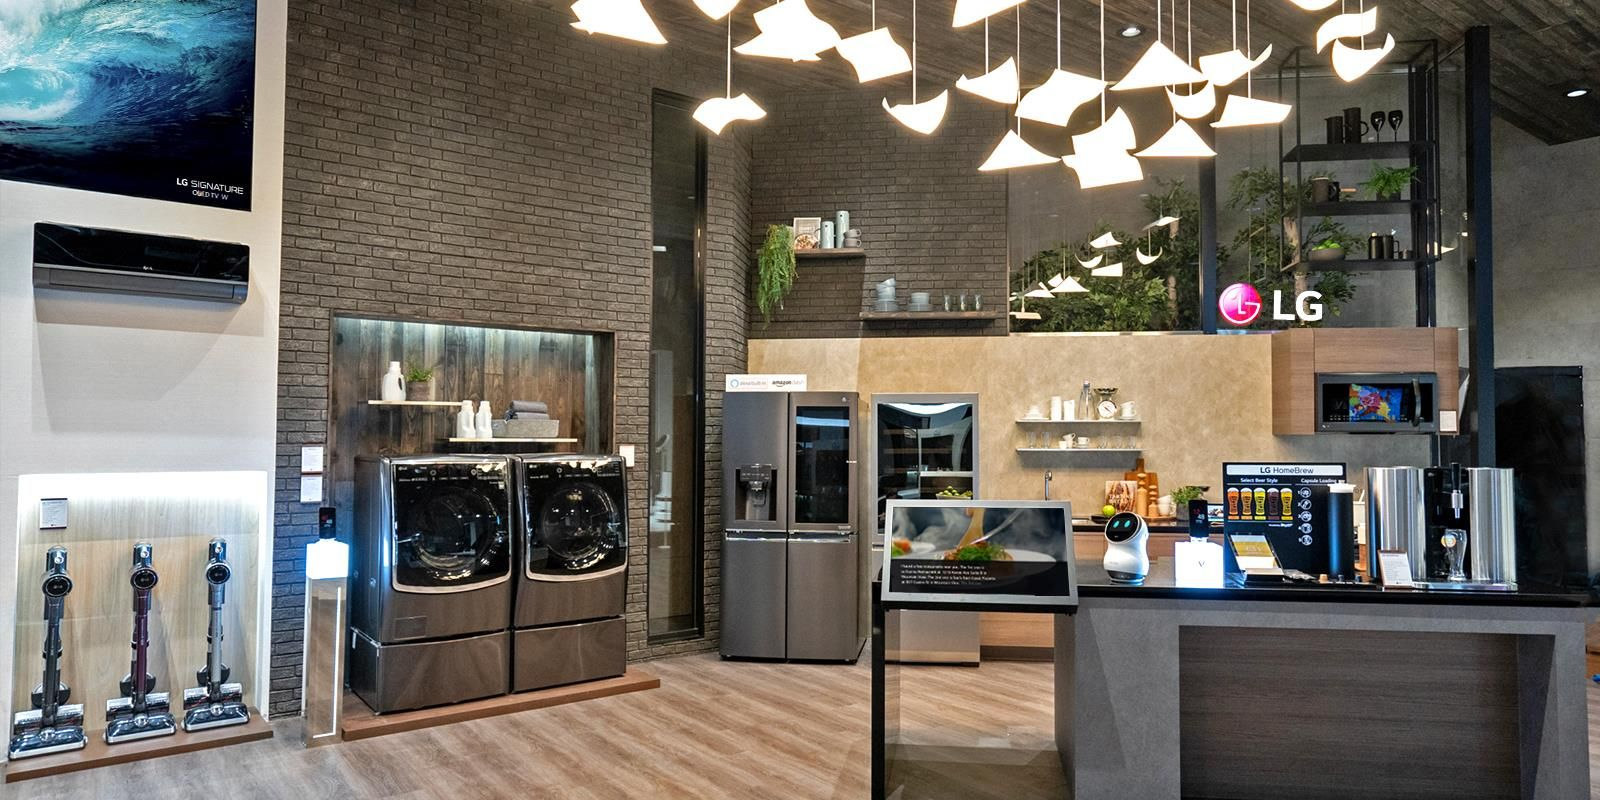 These Gadgets and Appliances at CES 2020 Give Us a Glimpse into the Smart Homes of the Near Future